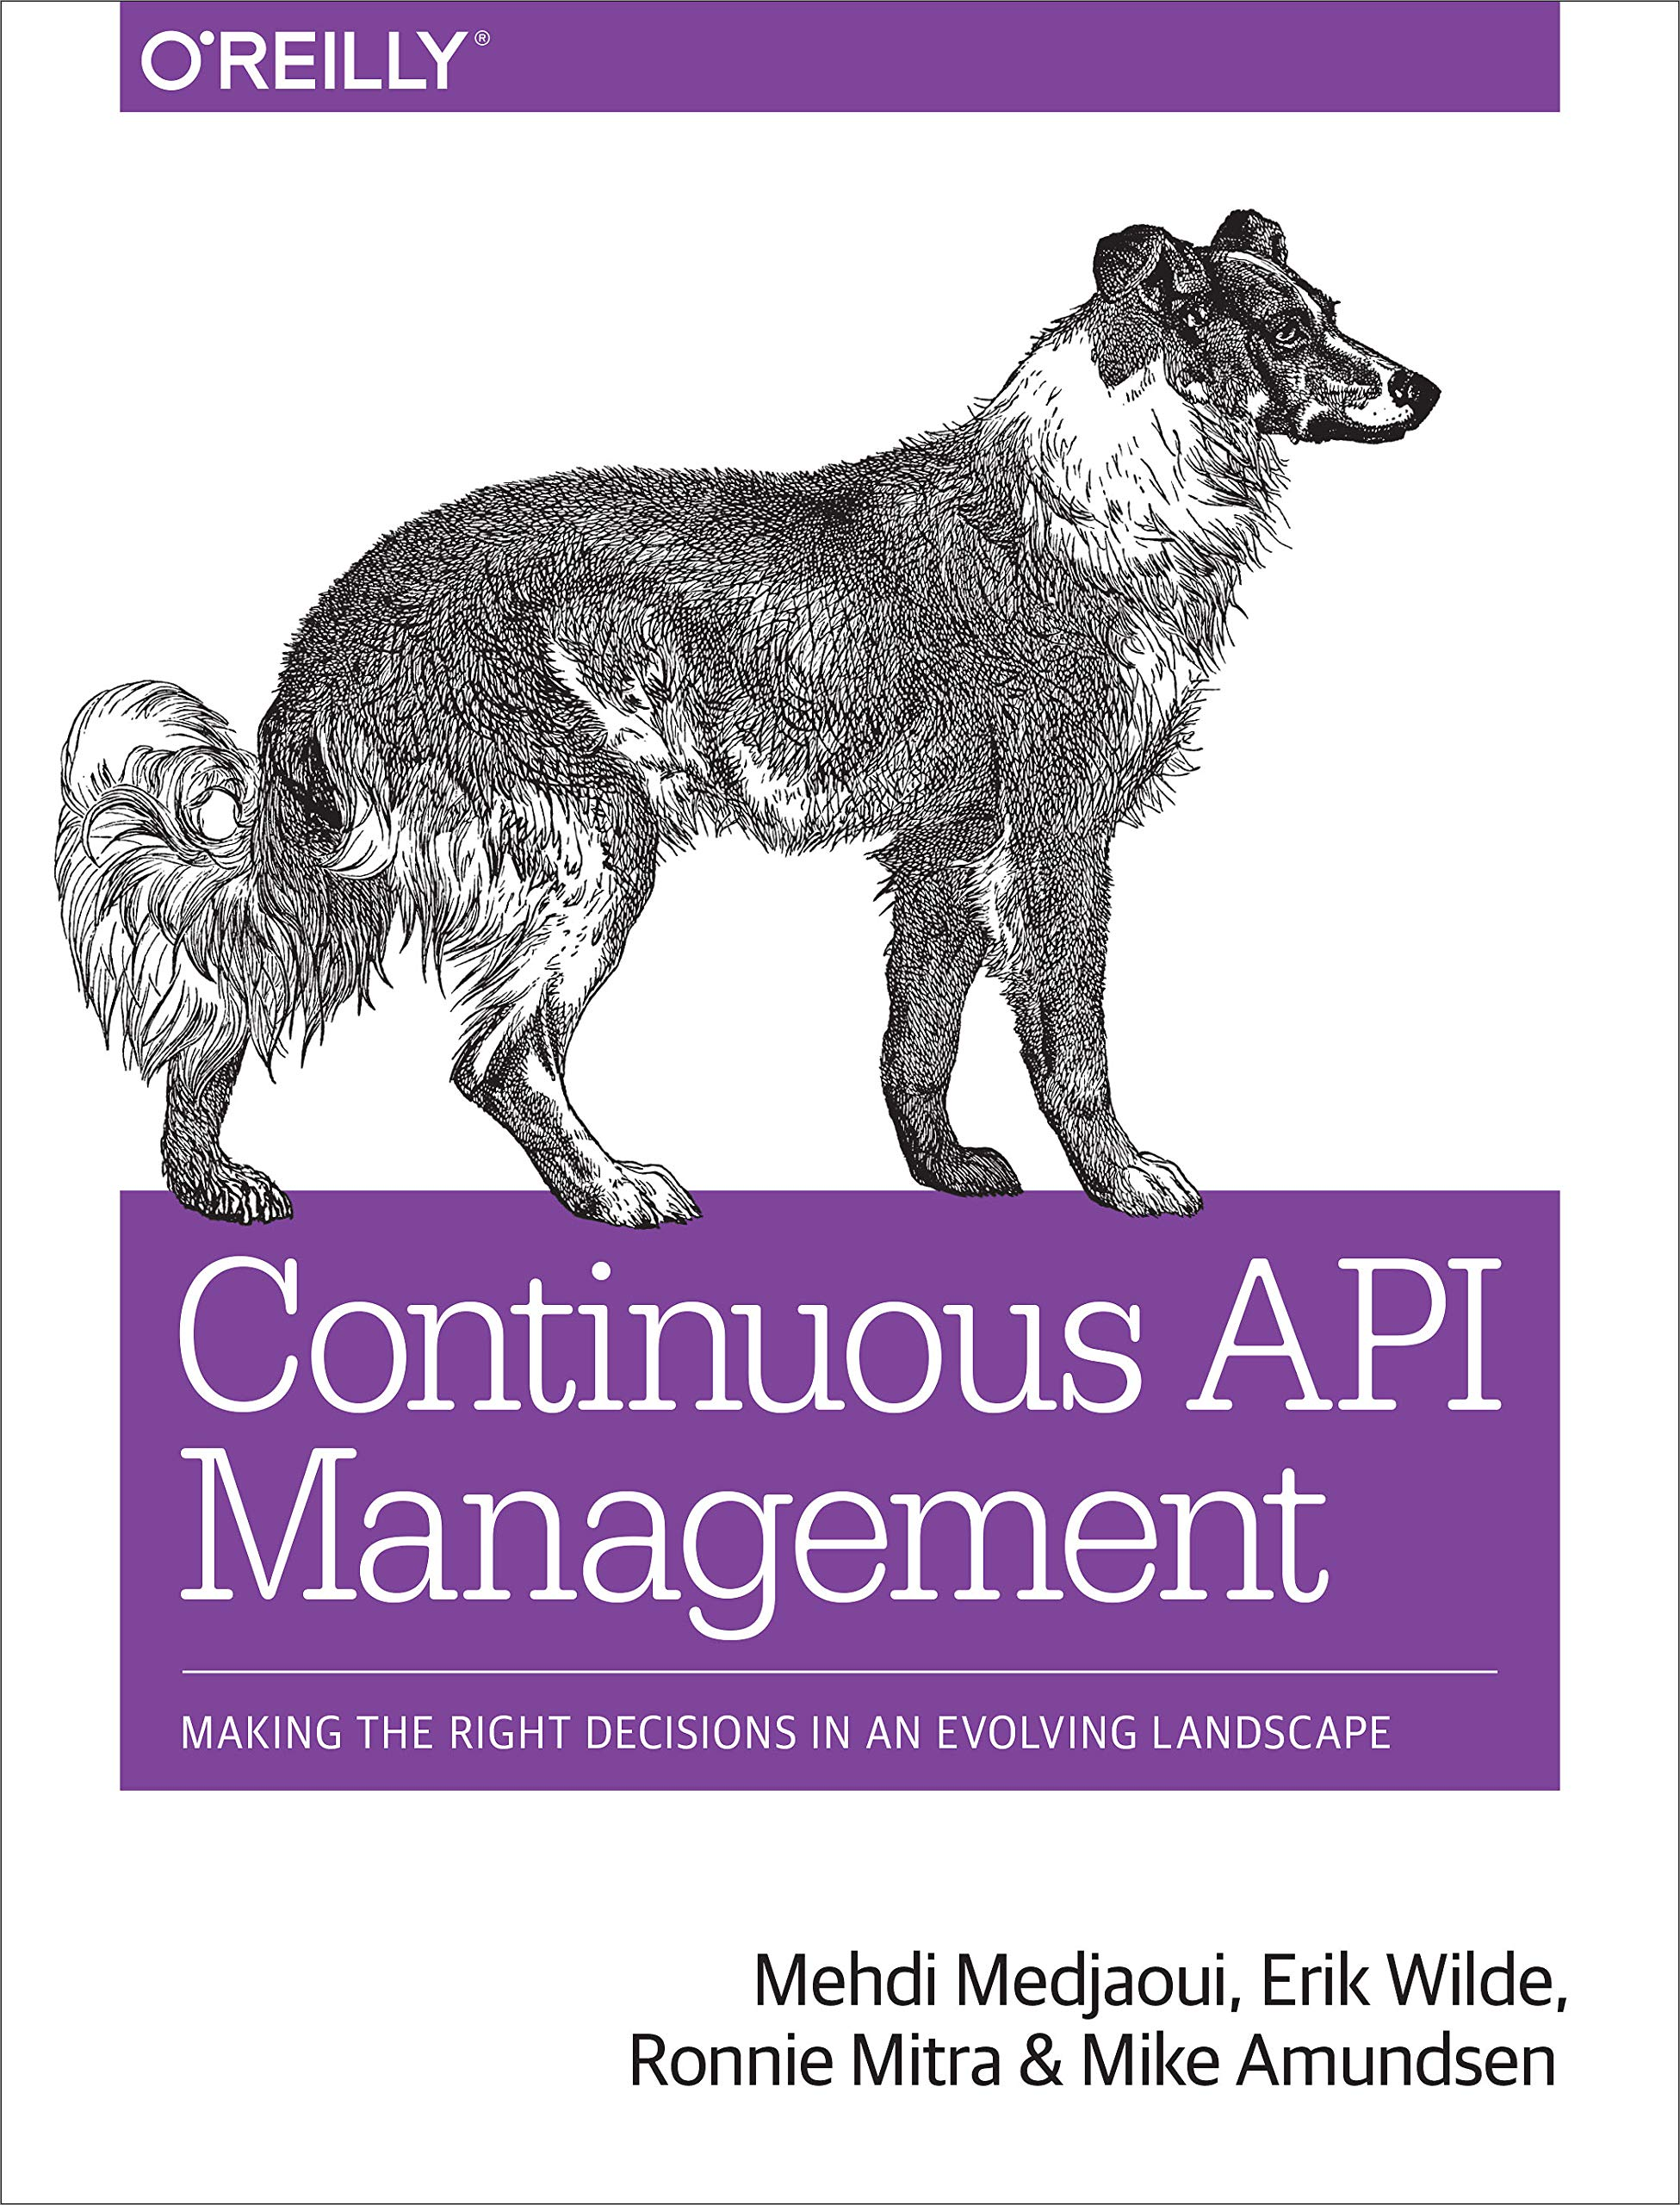 Continuous API Management  Making The Right Decisions In An Evolving Landscape